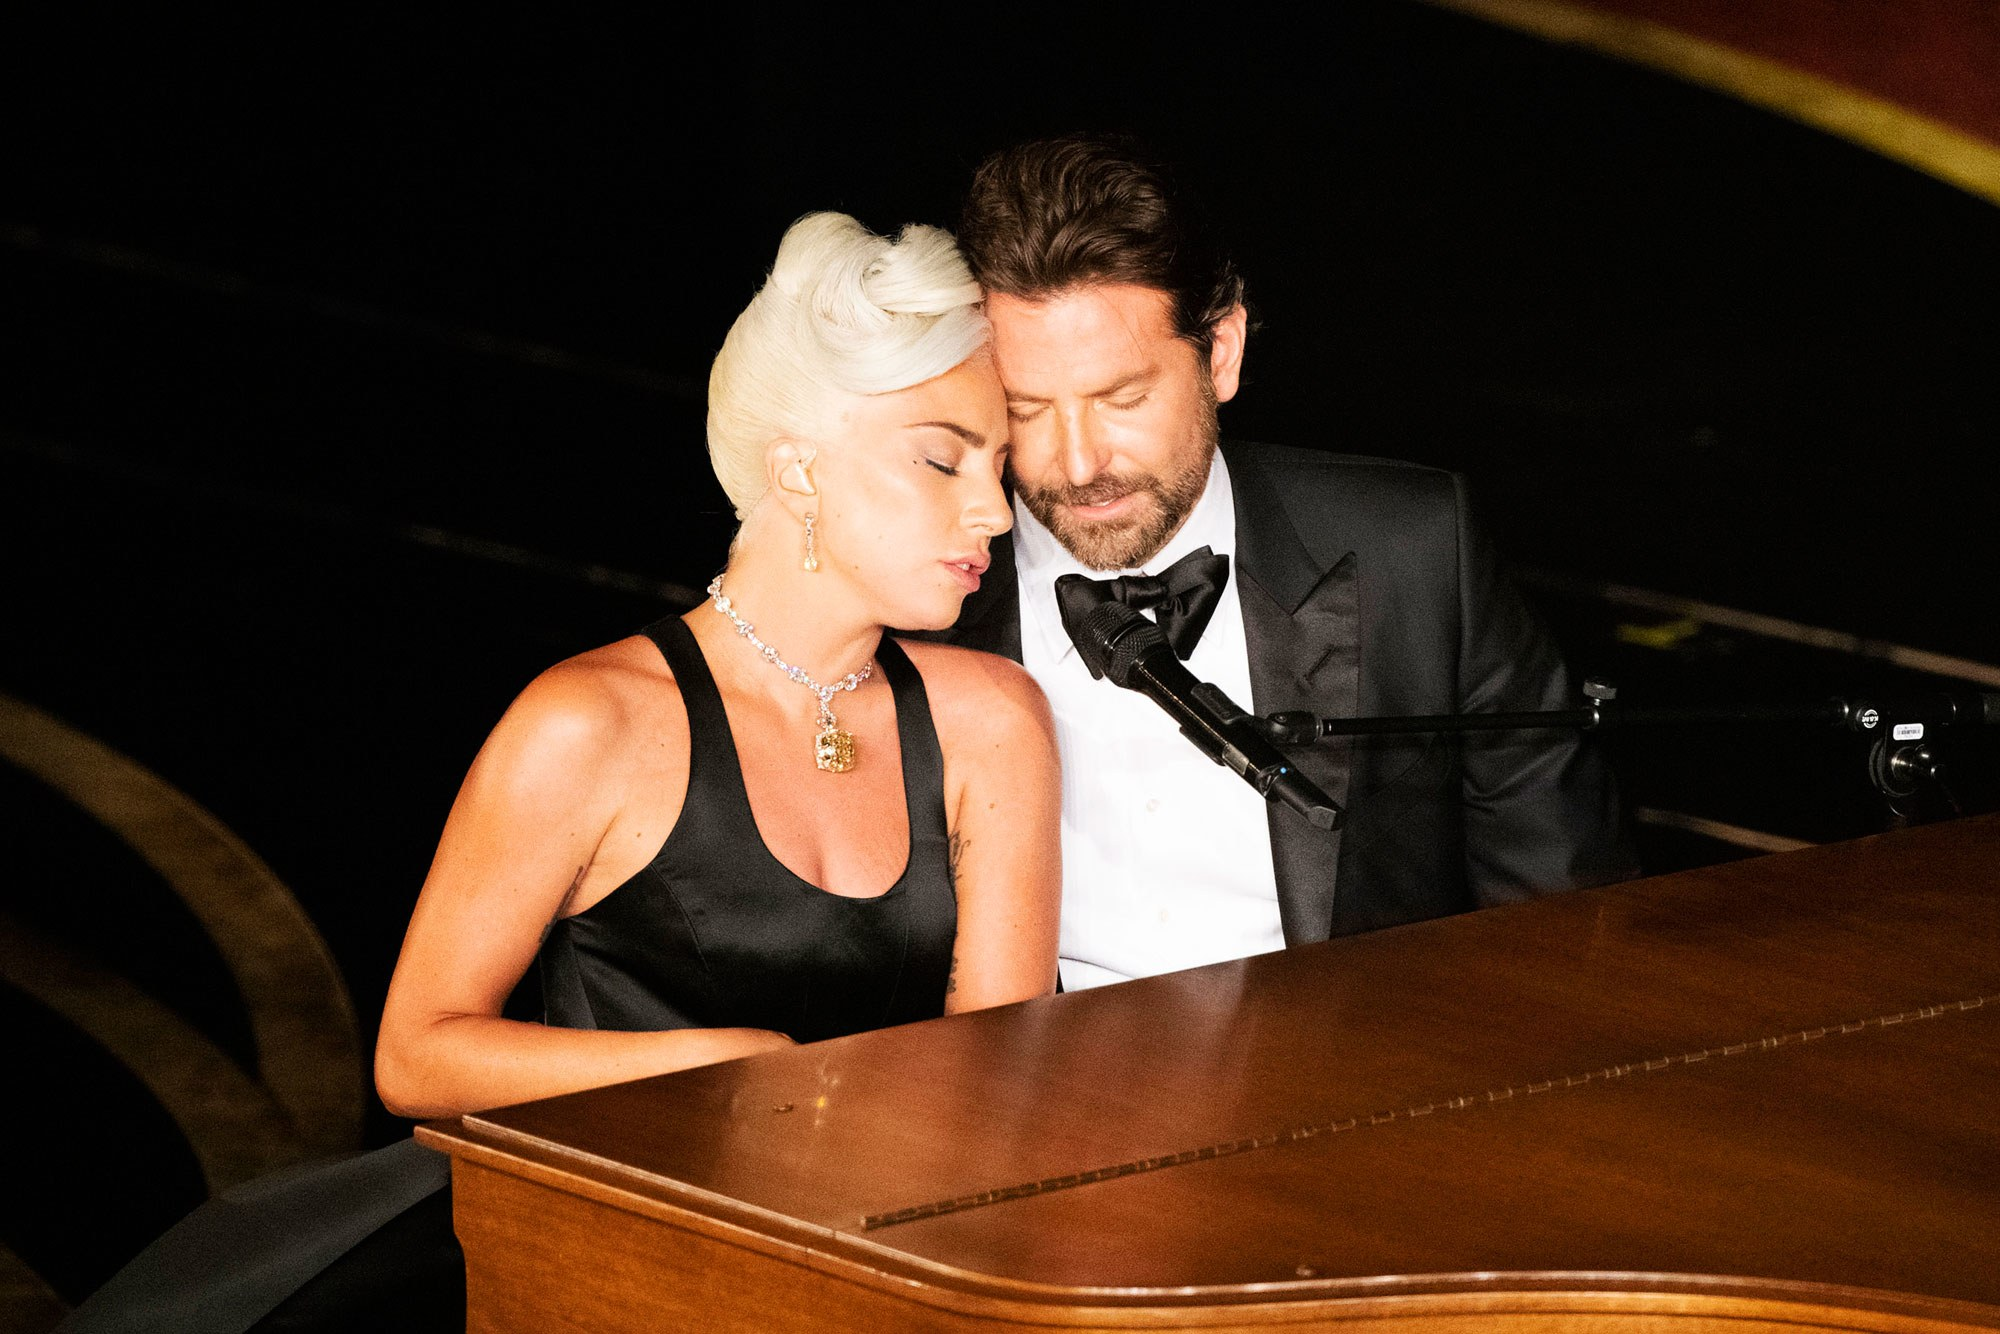 lady-gaga-talks-romantic-bradley-cooper-oscars-performance-reveals-they-tried-to-fool-everyone-into-believing-theyre-really-in-love